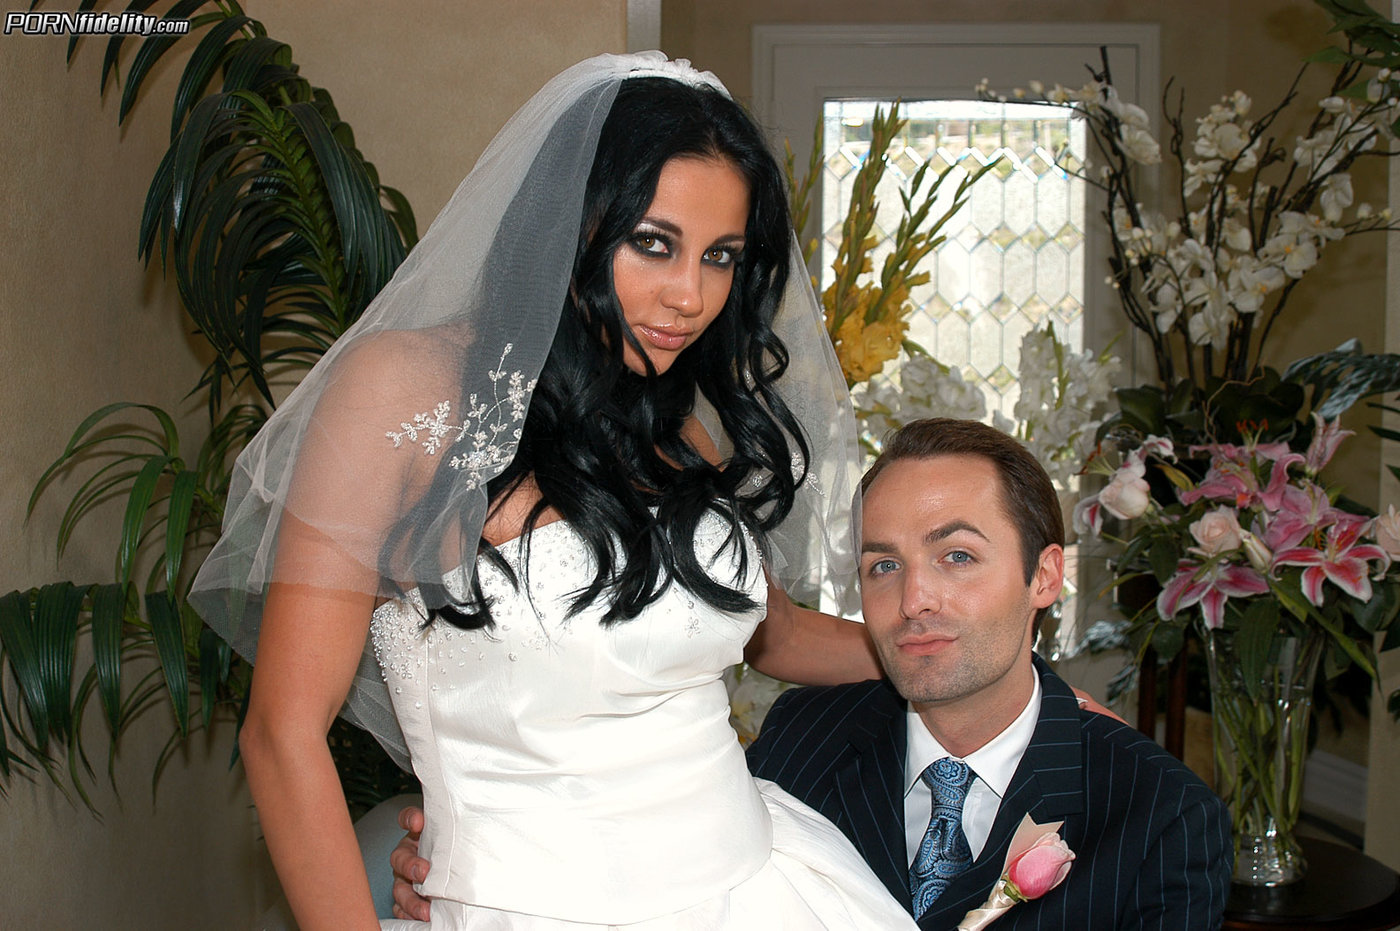 tanned brunette bride fucking some big-dicked dude on a king-sized